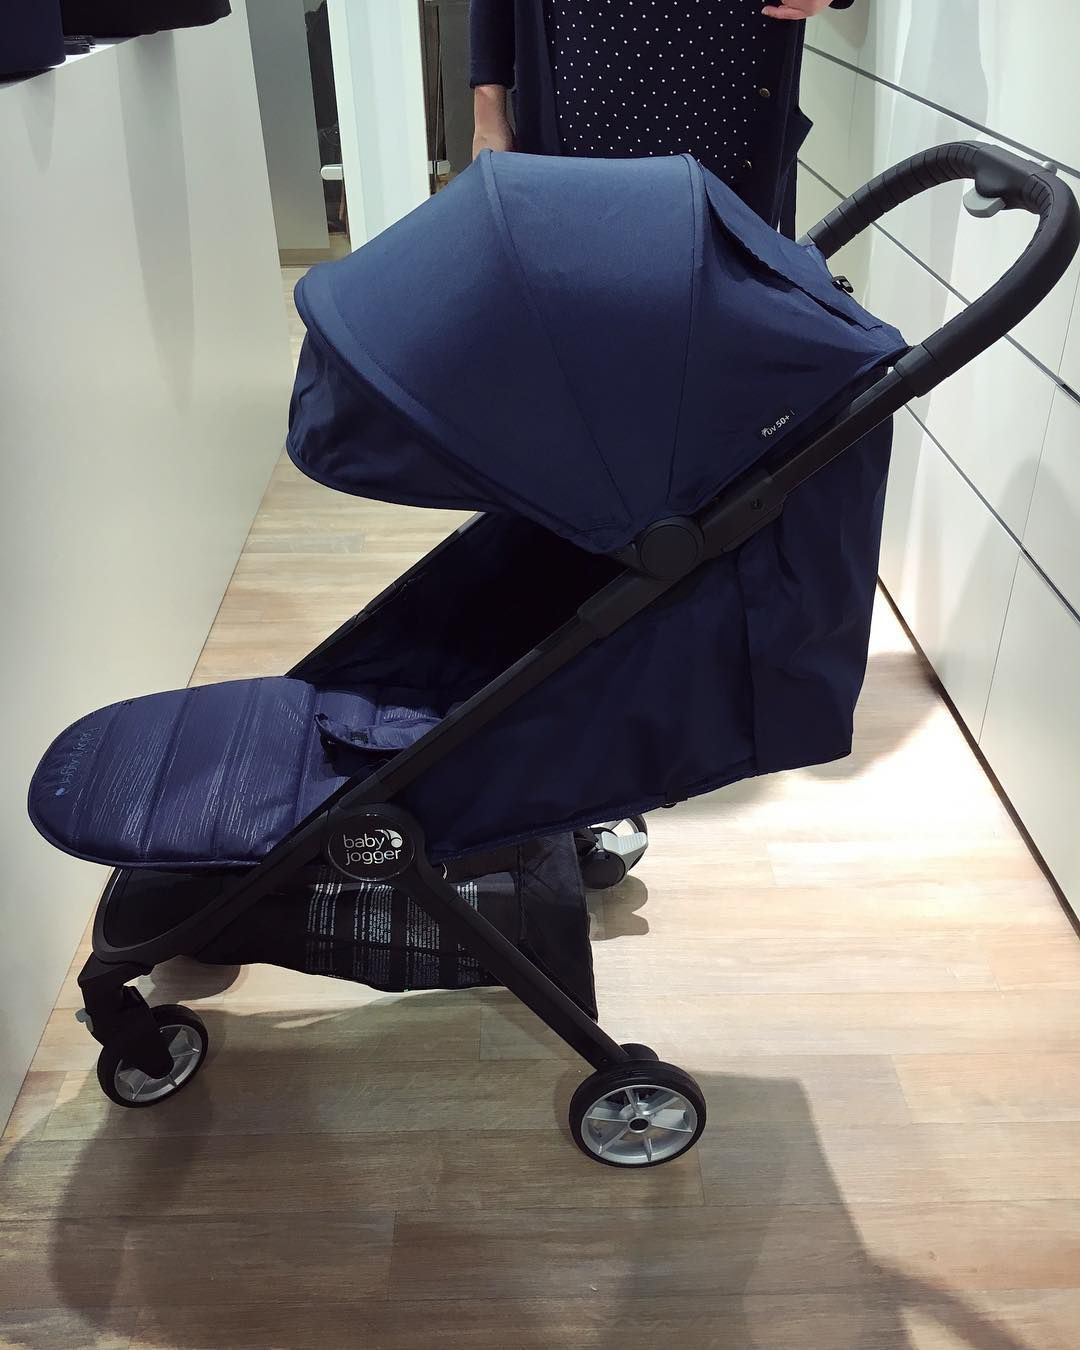 33+ City tour stroller by baby jogger ideas in 2021